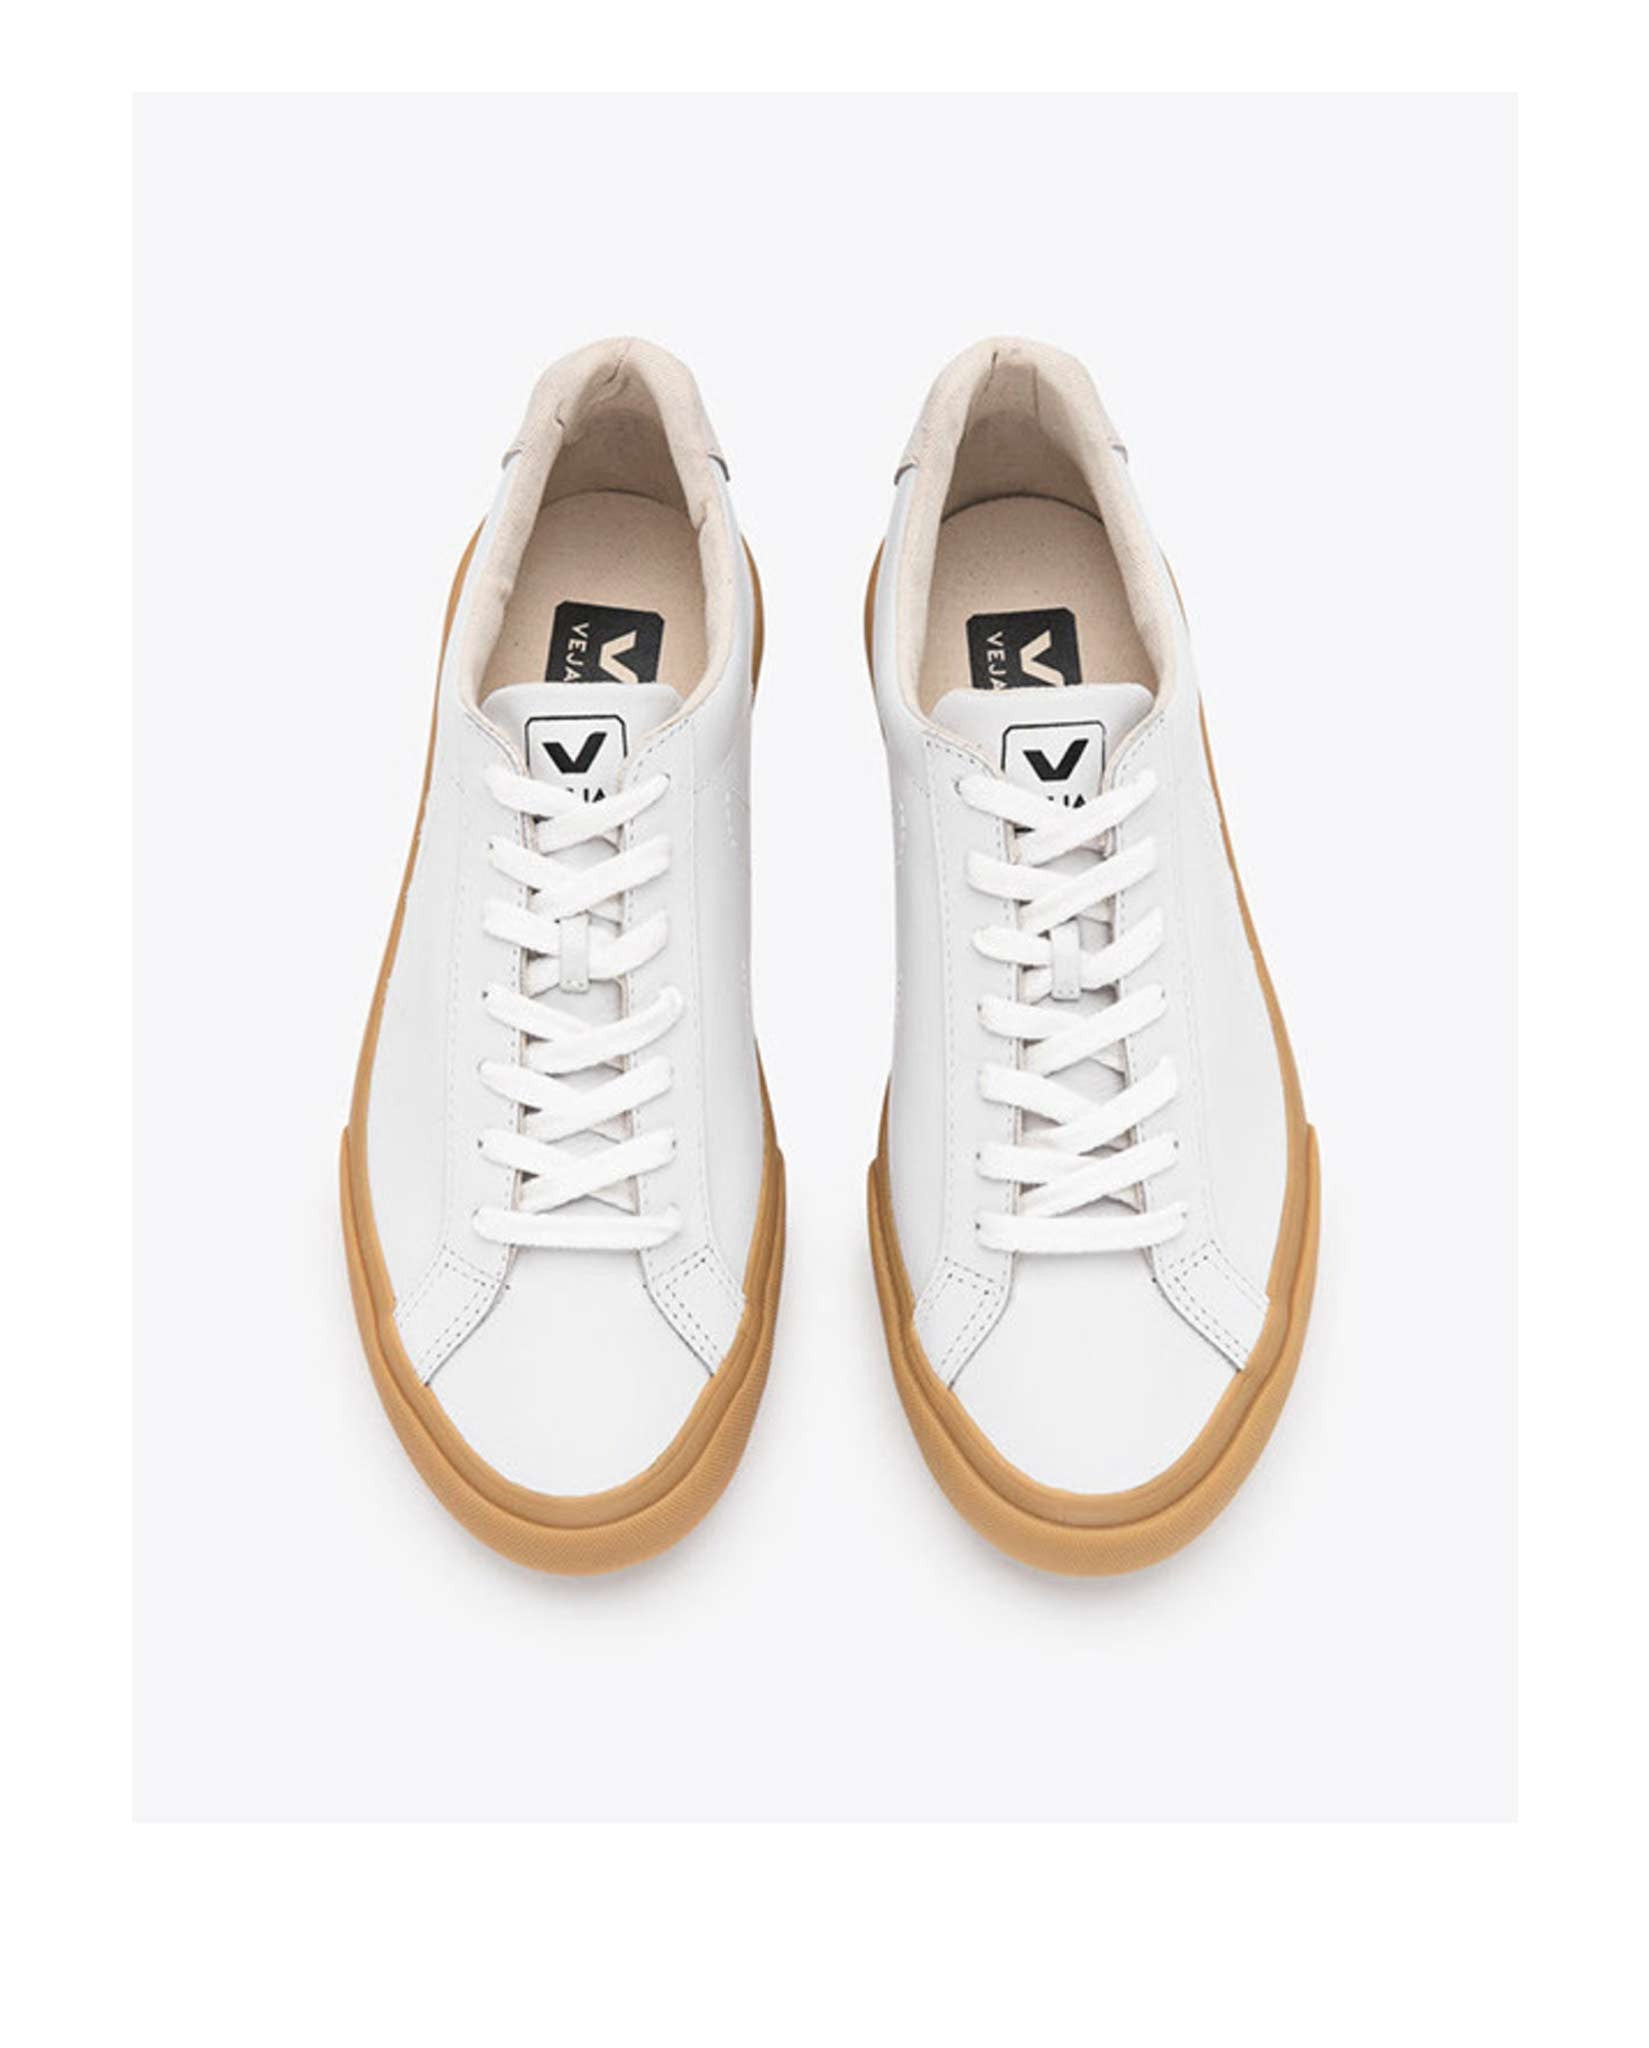 Veja Esplar trainers white leather natural sole-Diverse